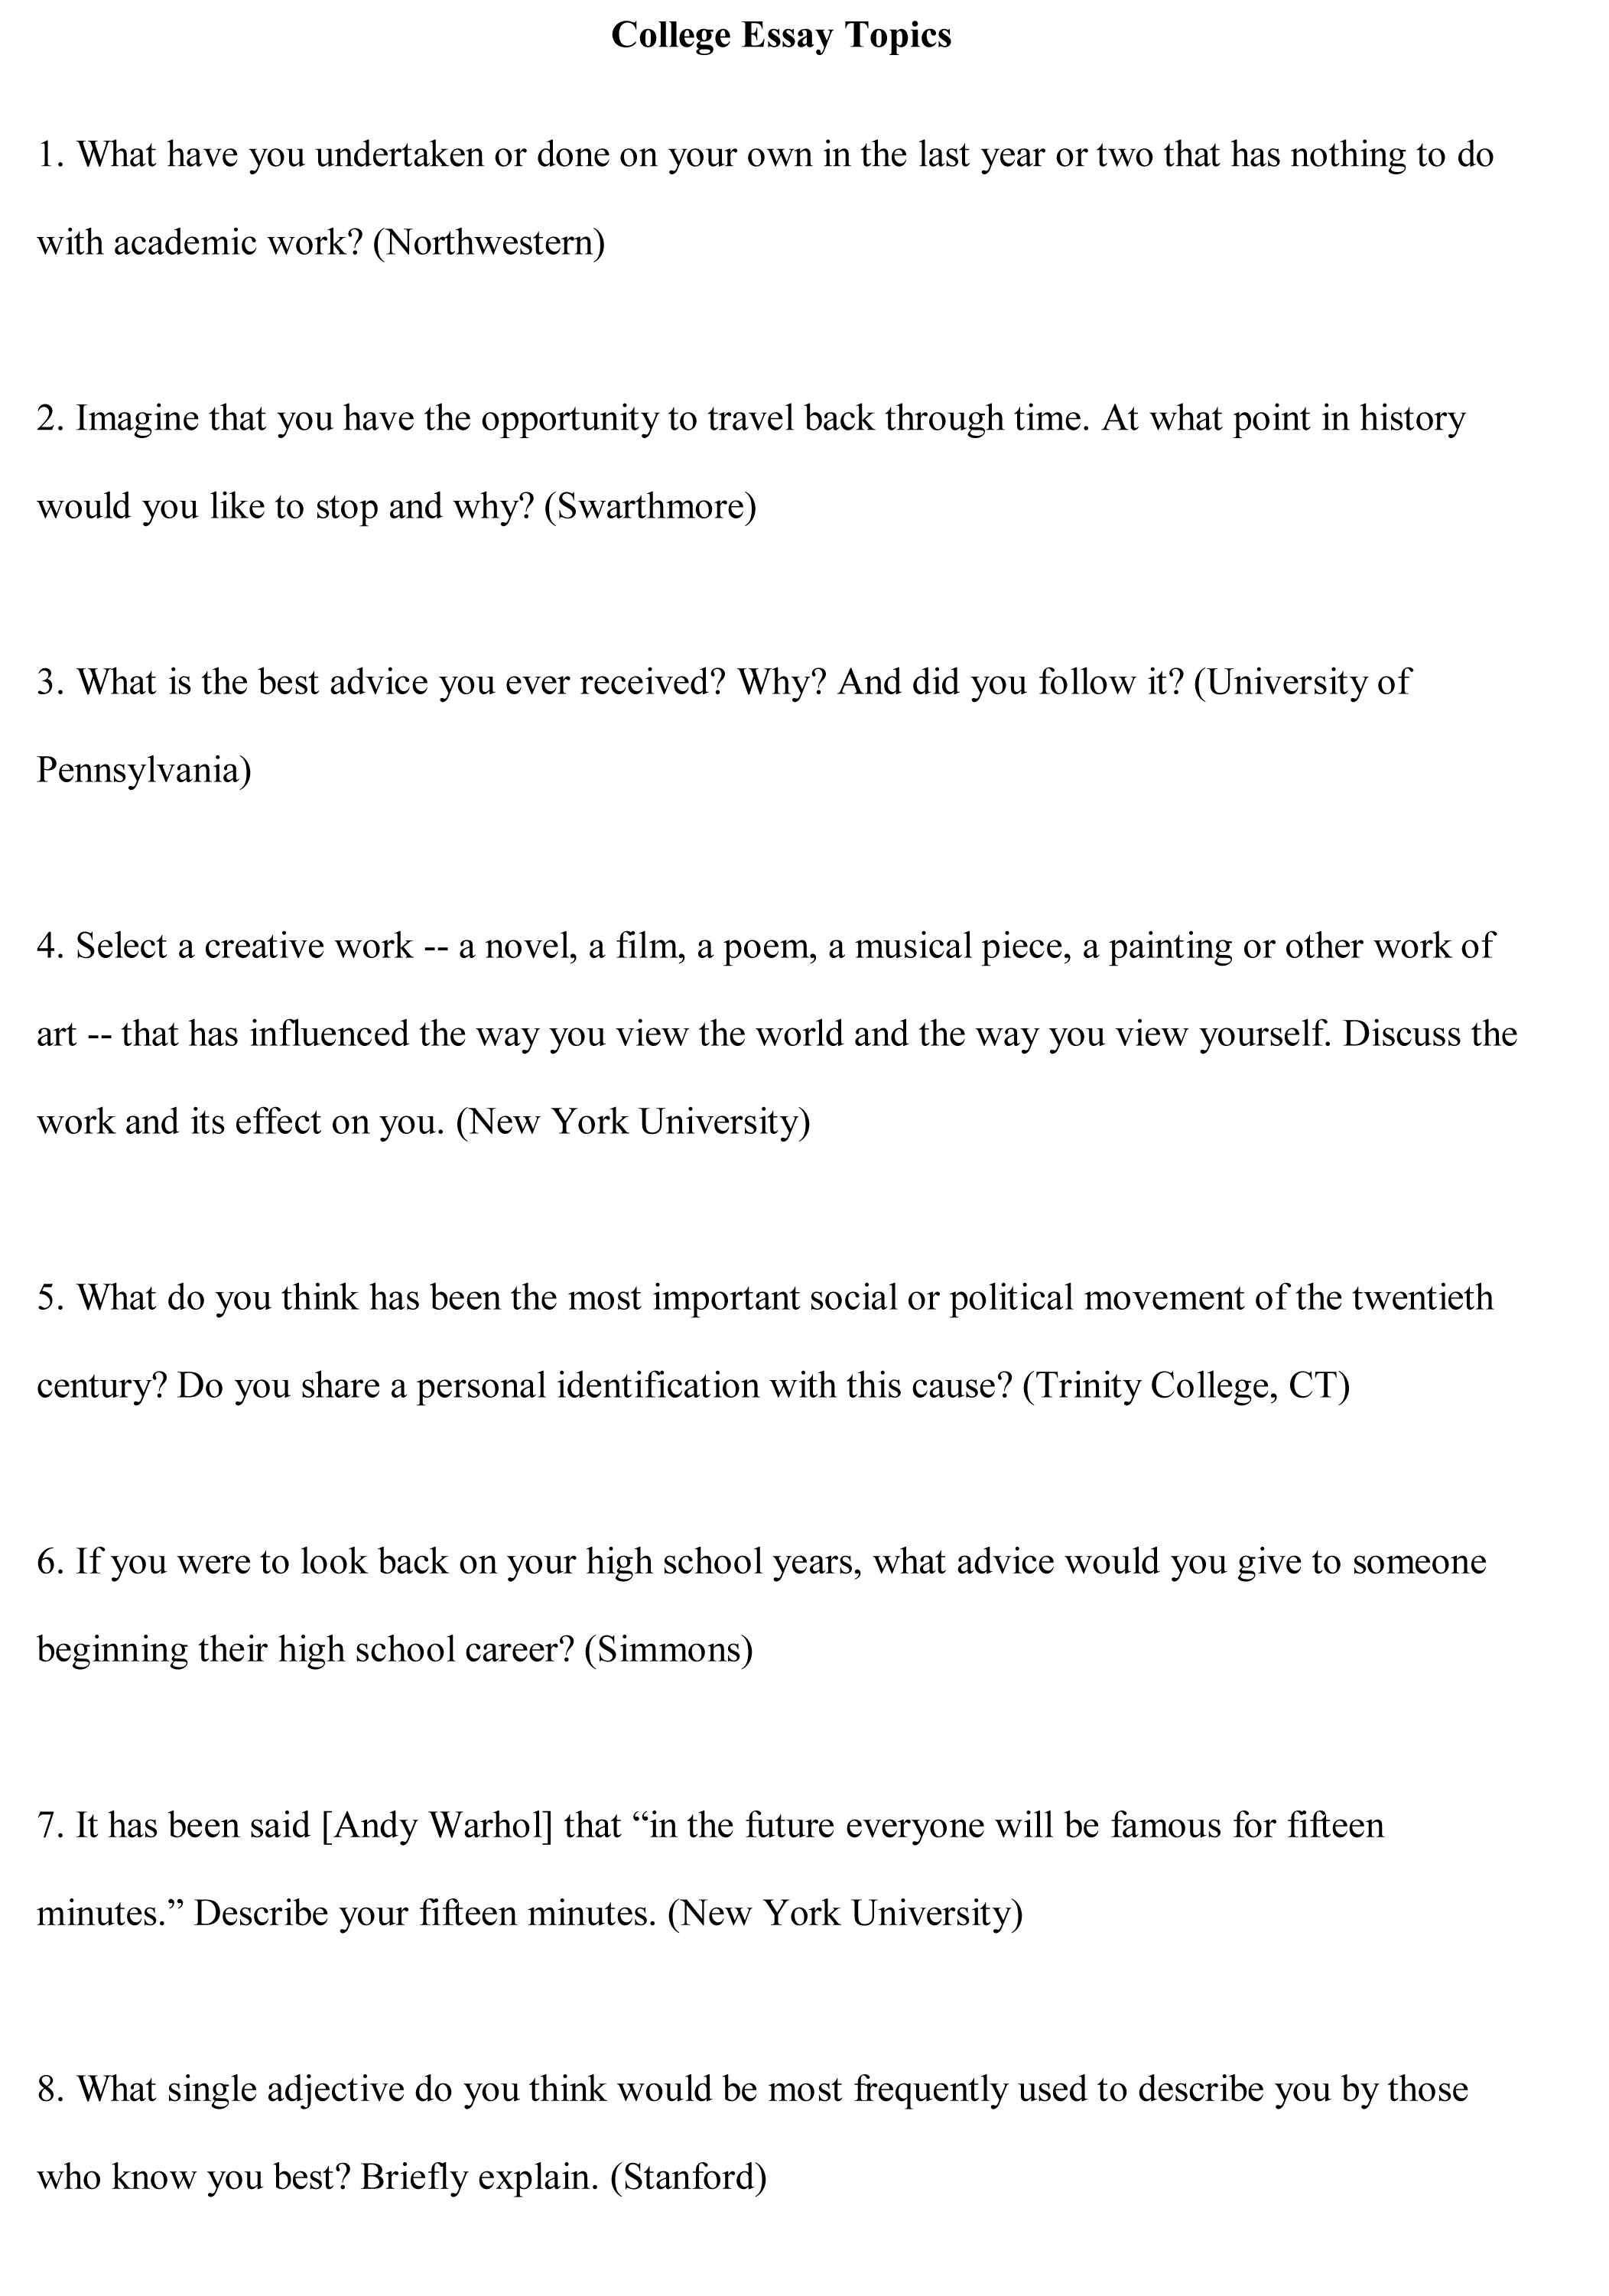 015 College Essay Topics Free Sample1 Automatic Writer Incredible Full